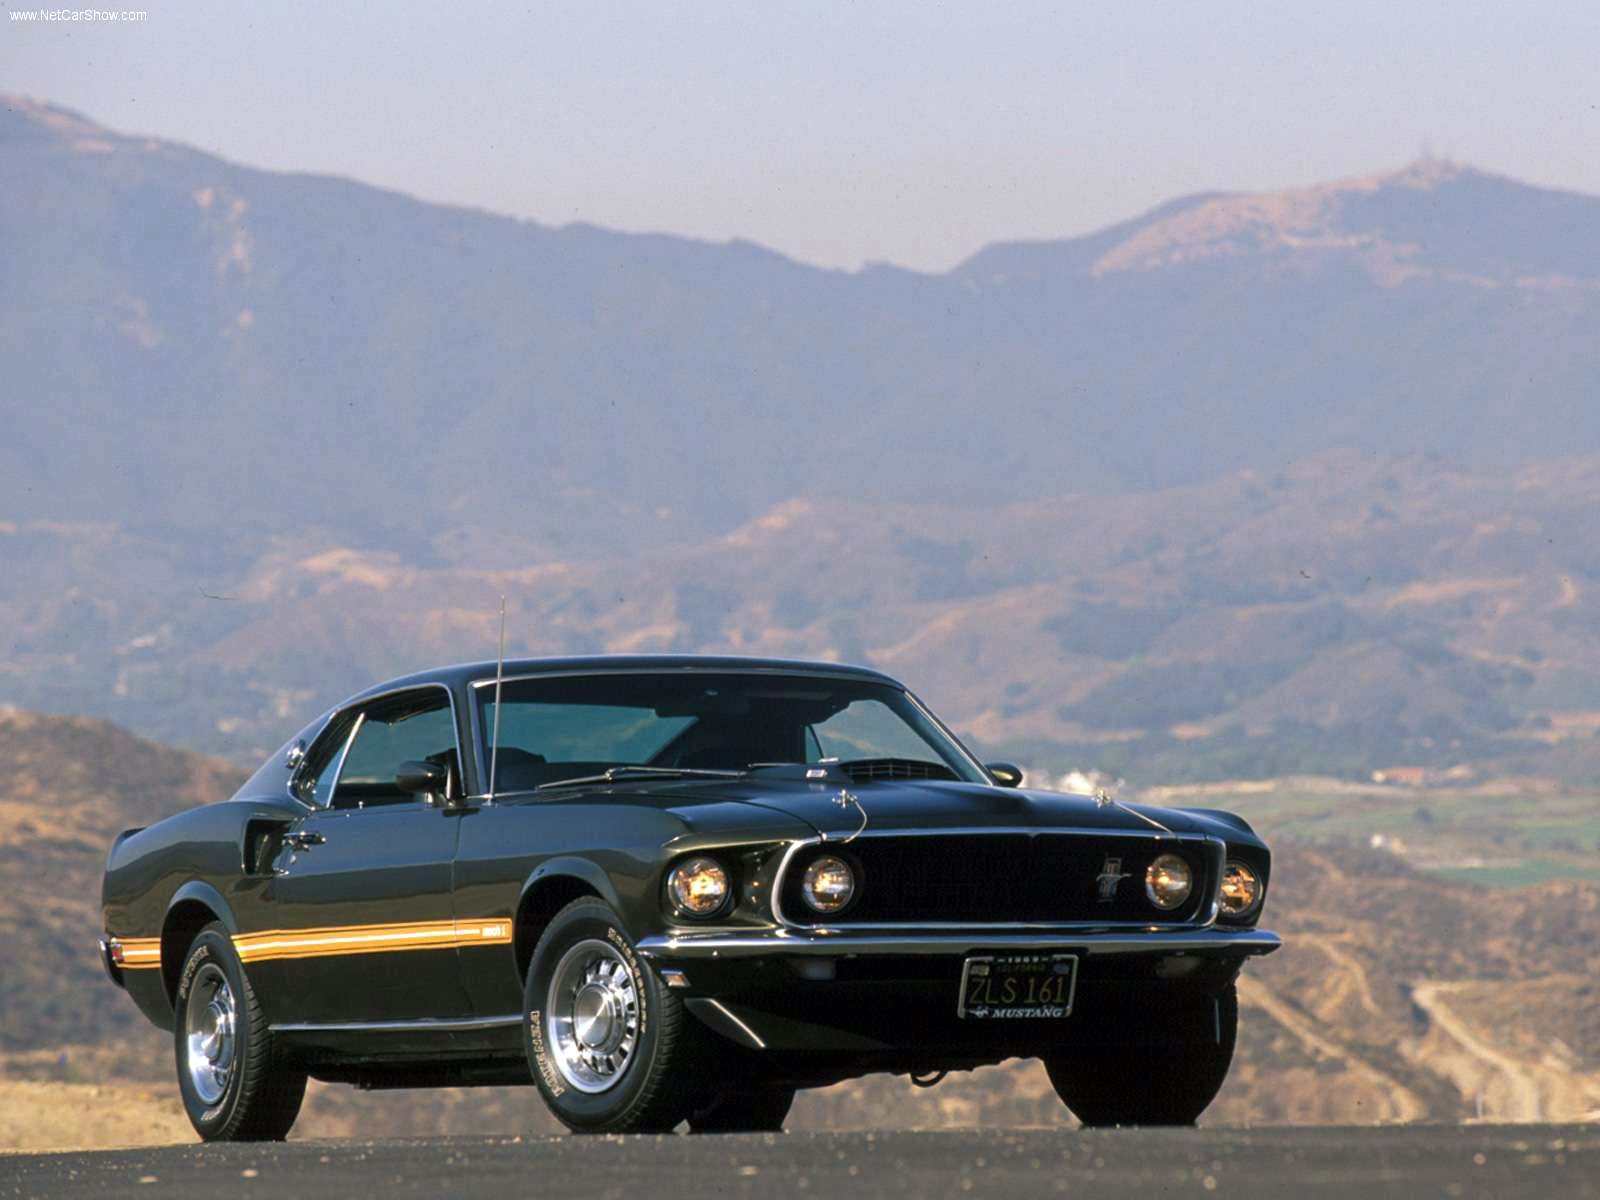 transpress nz 1969 ford mustang mach 1. Black Bedroom Furniture Sets. Home Design Ideas